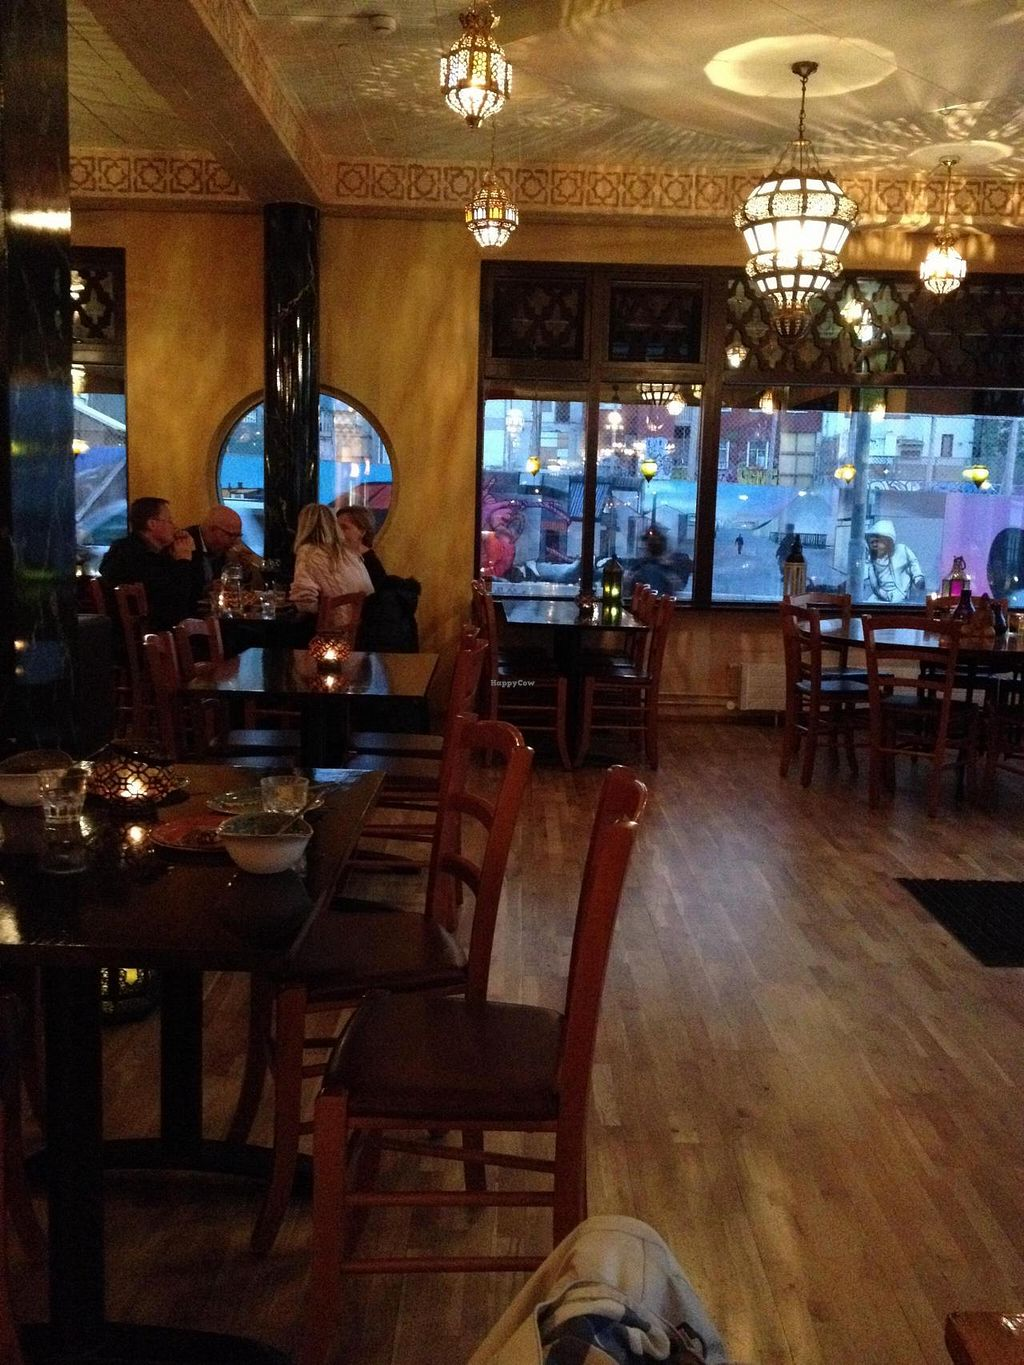 """Photo of CLOSED: Kryddlegin Hjortu  by <a href=""""/members/profile/Luhak11"""">Luhak11</a> <br/>New restaurant unit at Hverfisgata, 33 <br/> August 30, 2014  - <a href='/contact/abuse/image/42264/78634'>Report</a>"""